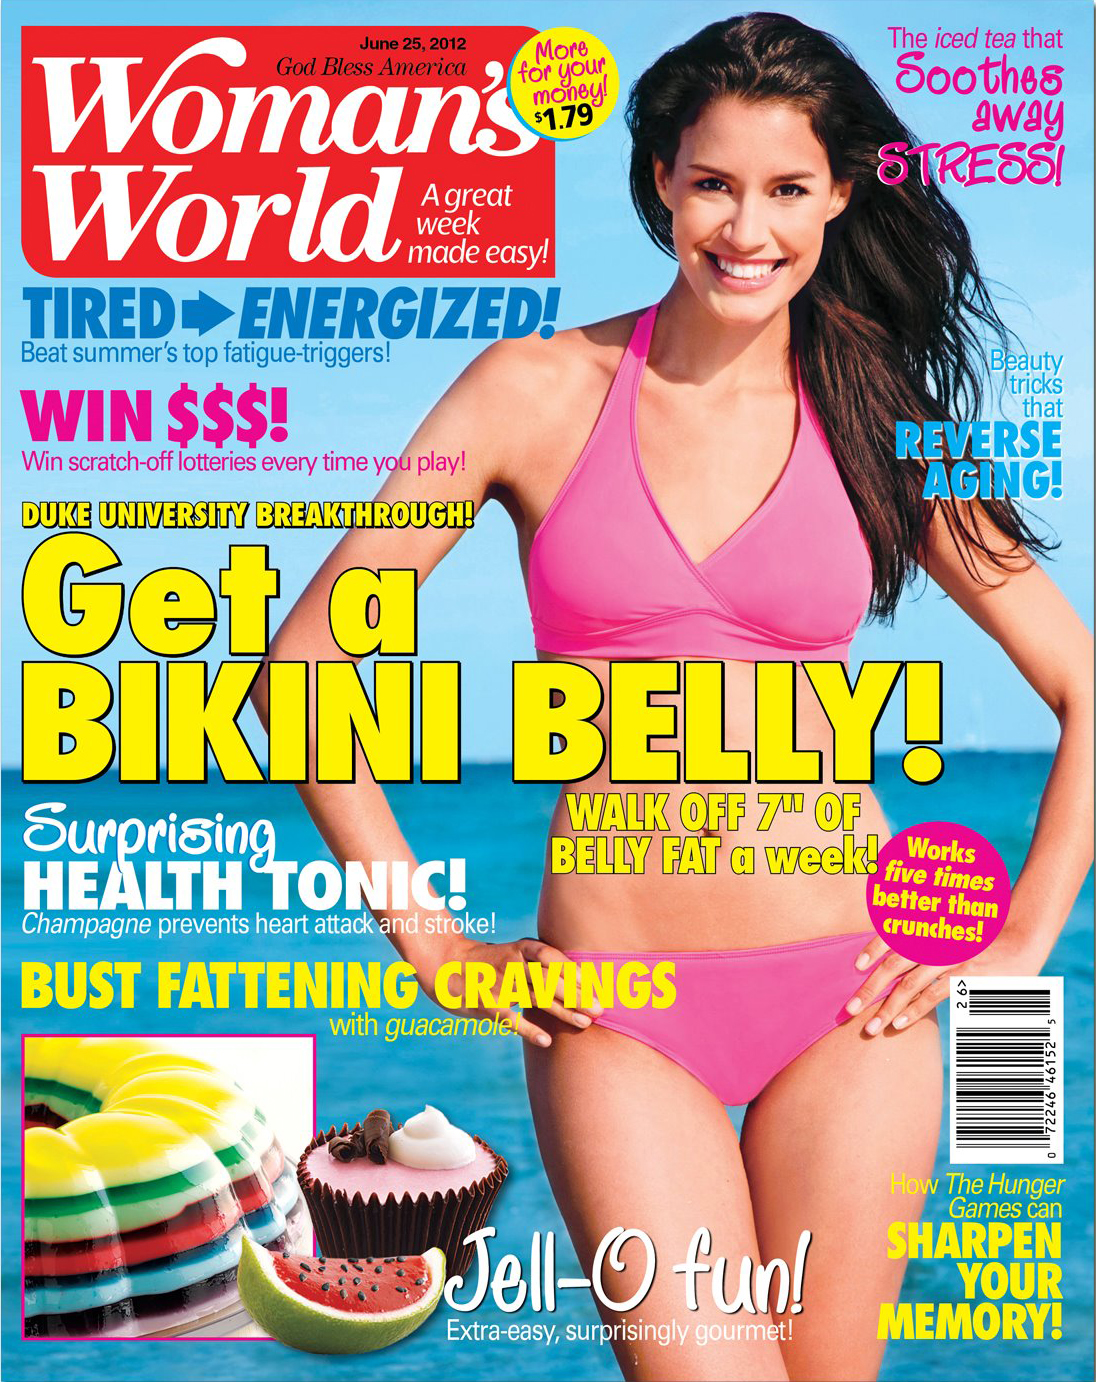 Woman's World Magazine: June 25th 2012.